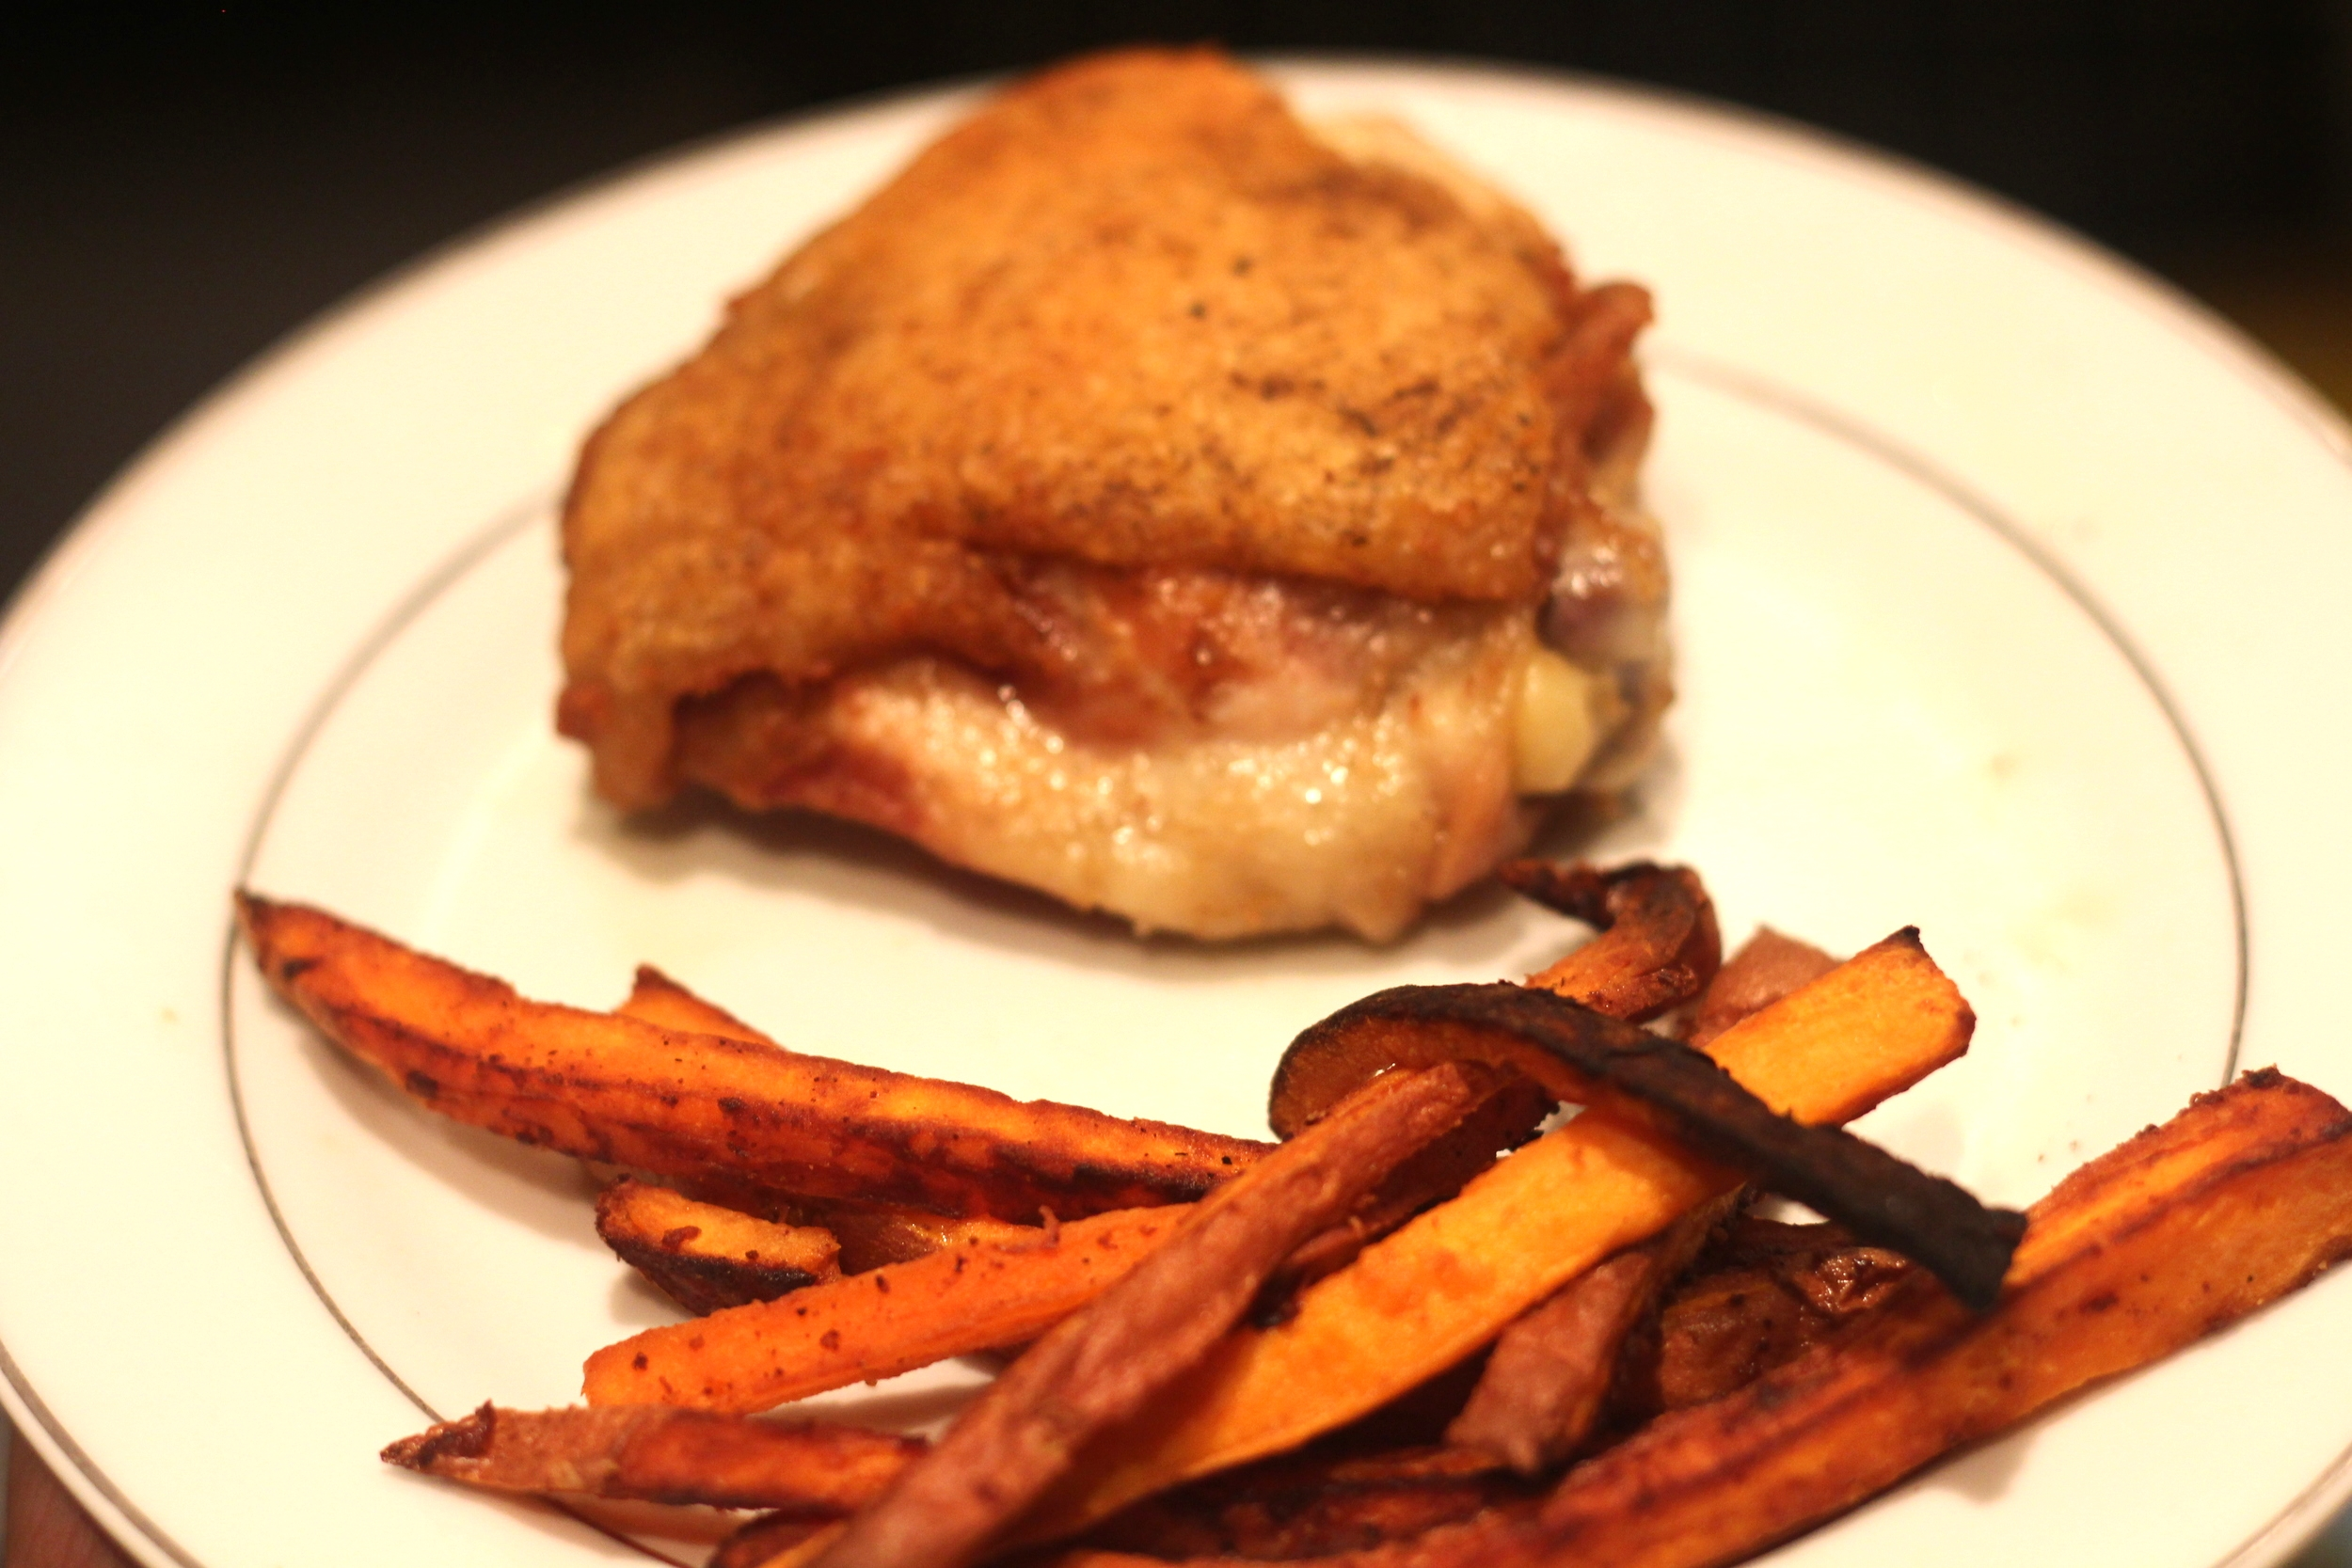 Lunch: Chicken Thigh and Sweet Potato Fries!